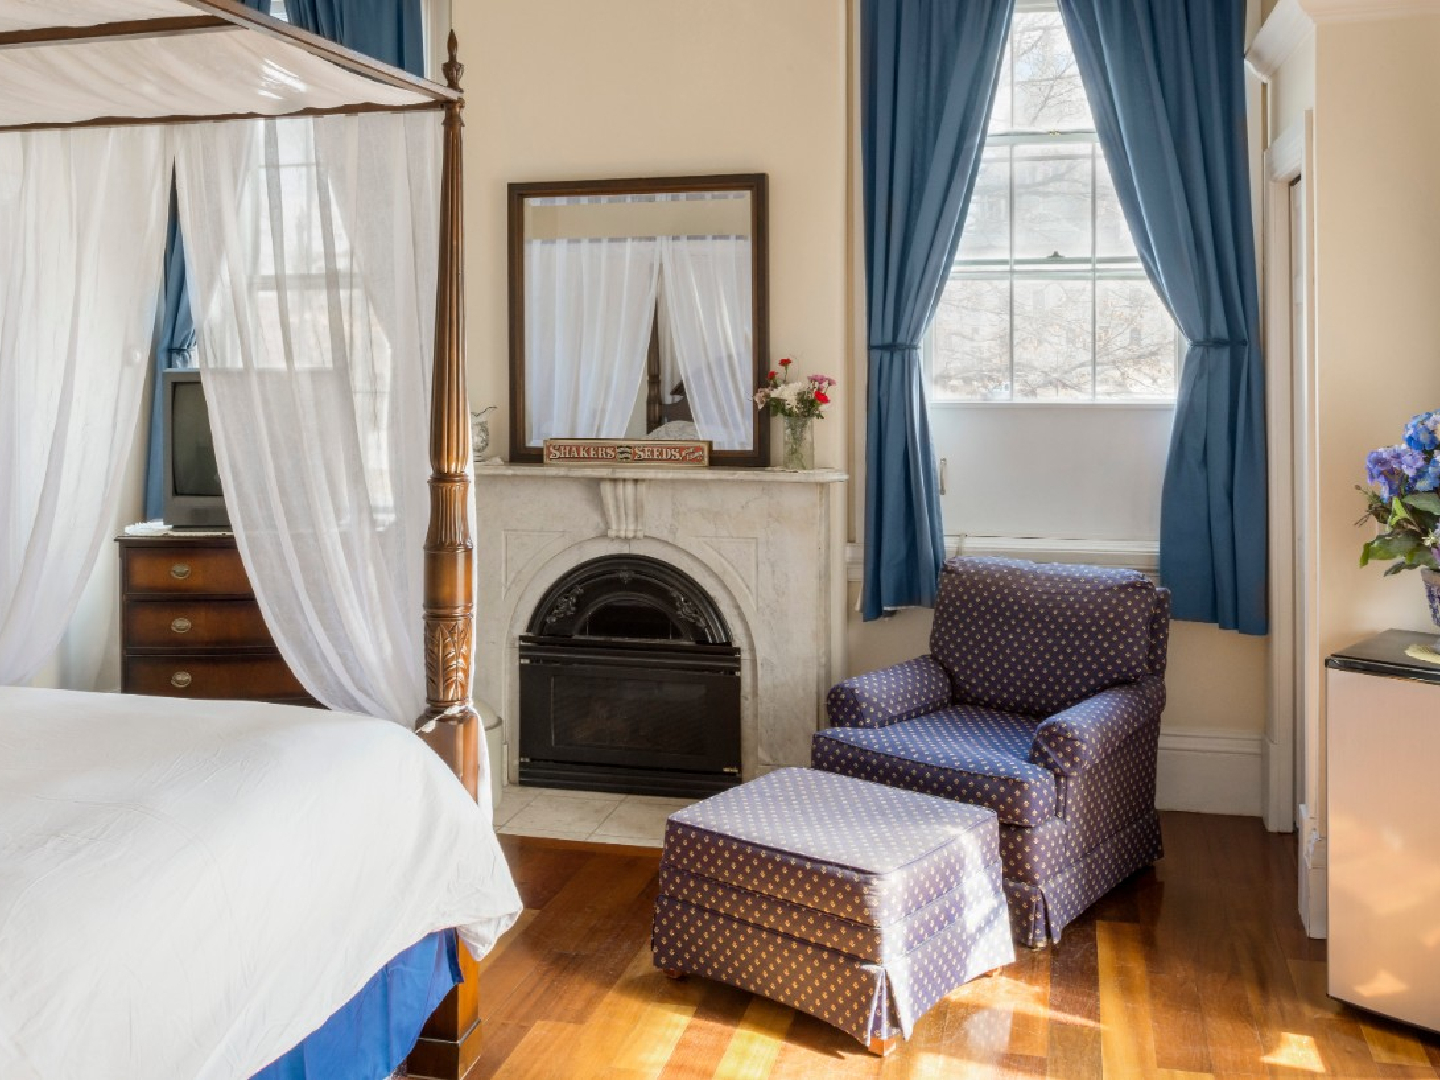 A bedroom with a bed and a chair in a room at Christopher Dodge House.